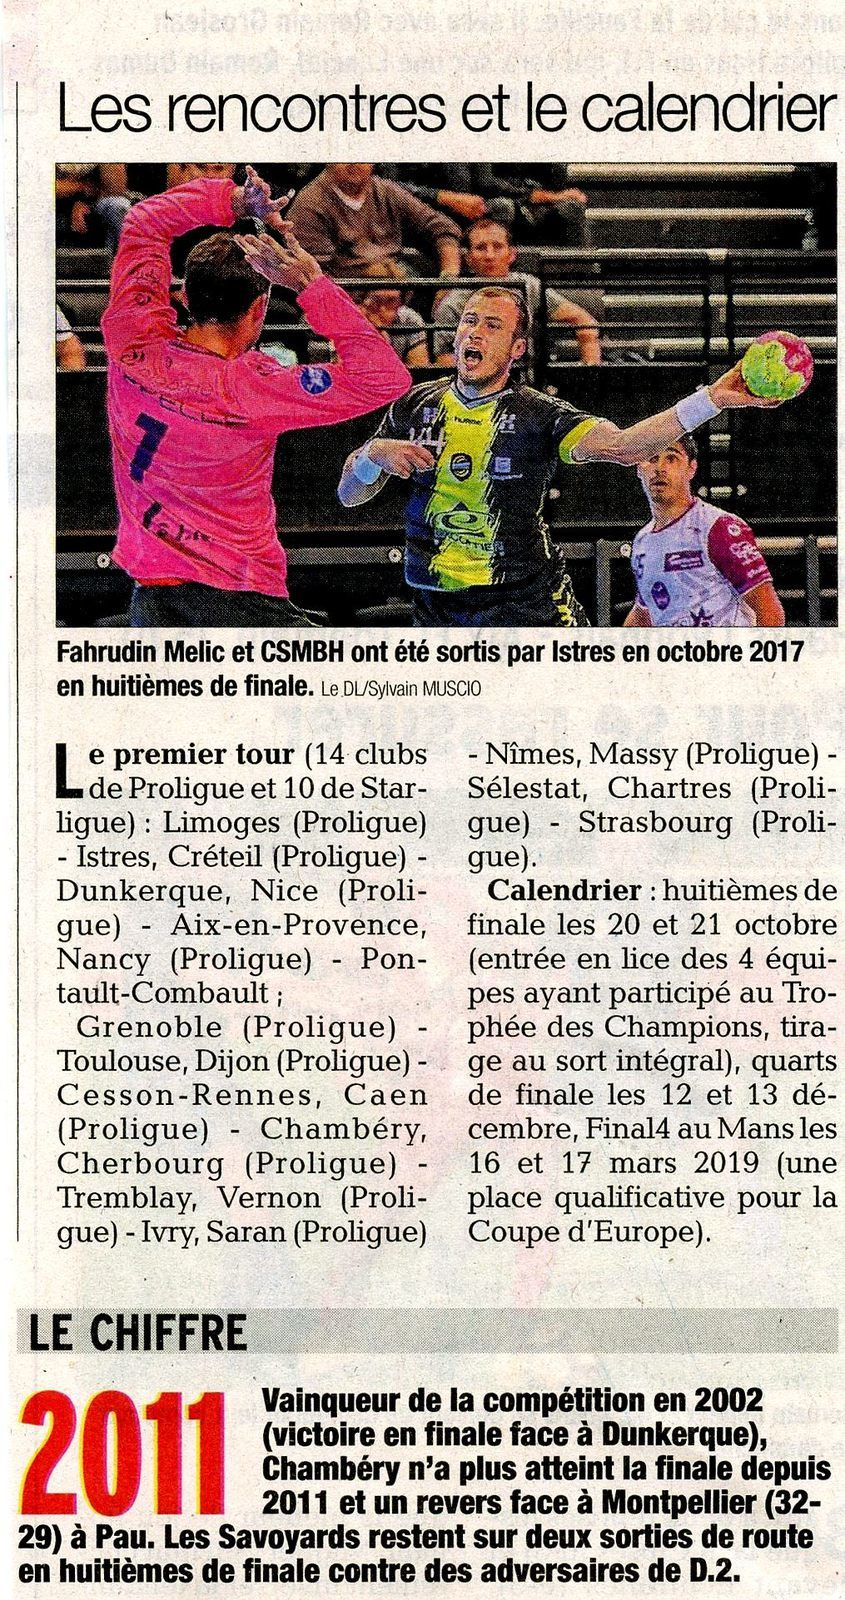 Coupe de la ligue les rencontres et le calendrier article DL 08/09/2018